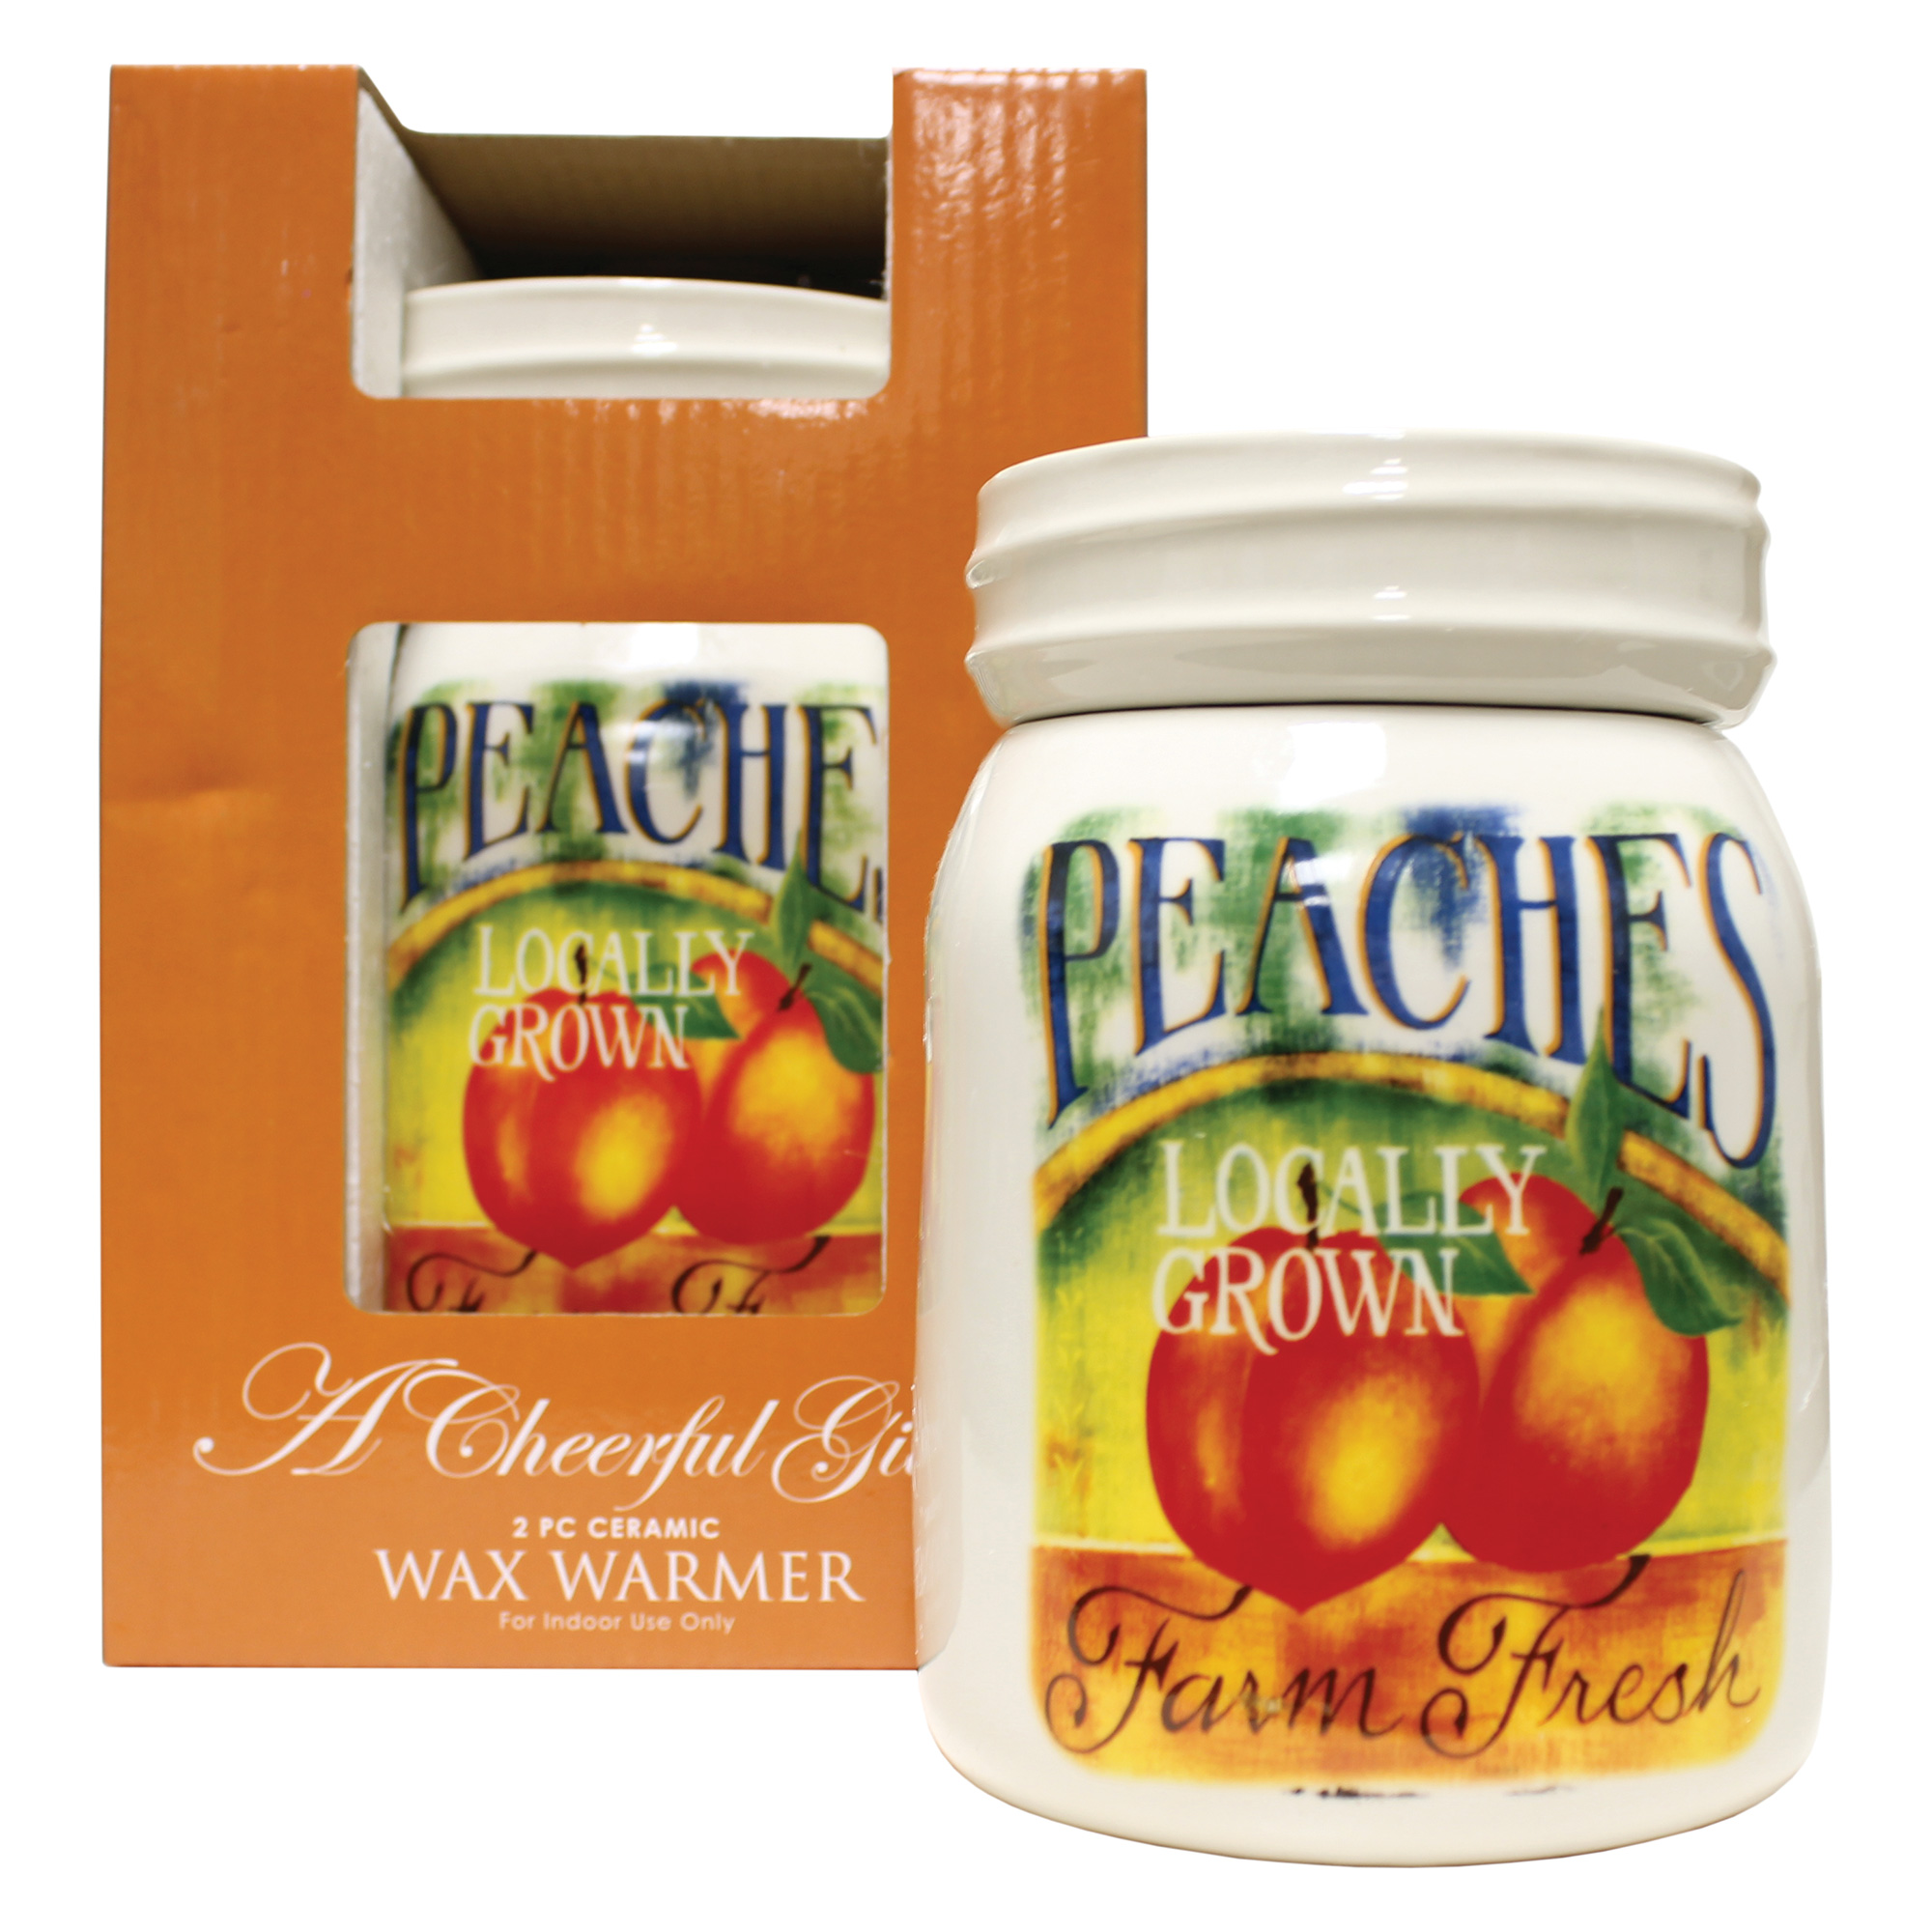 PEACHES TABLE TOP ELECTRIC WAX MELTER